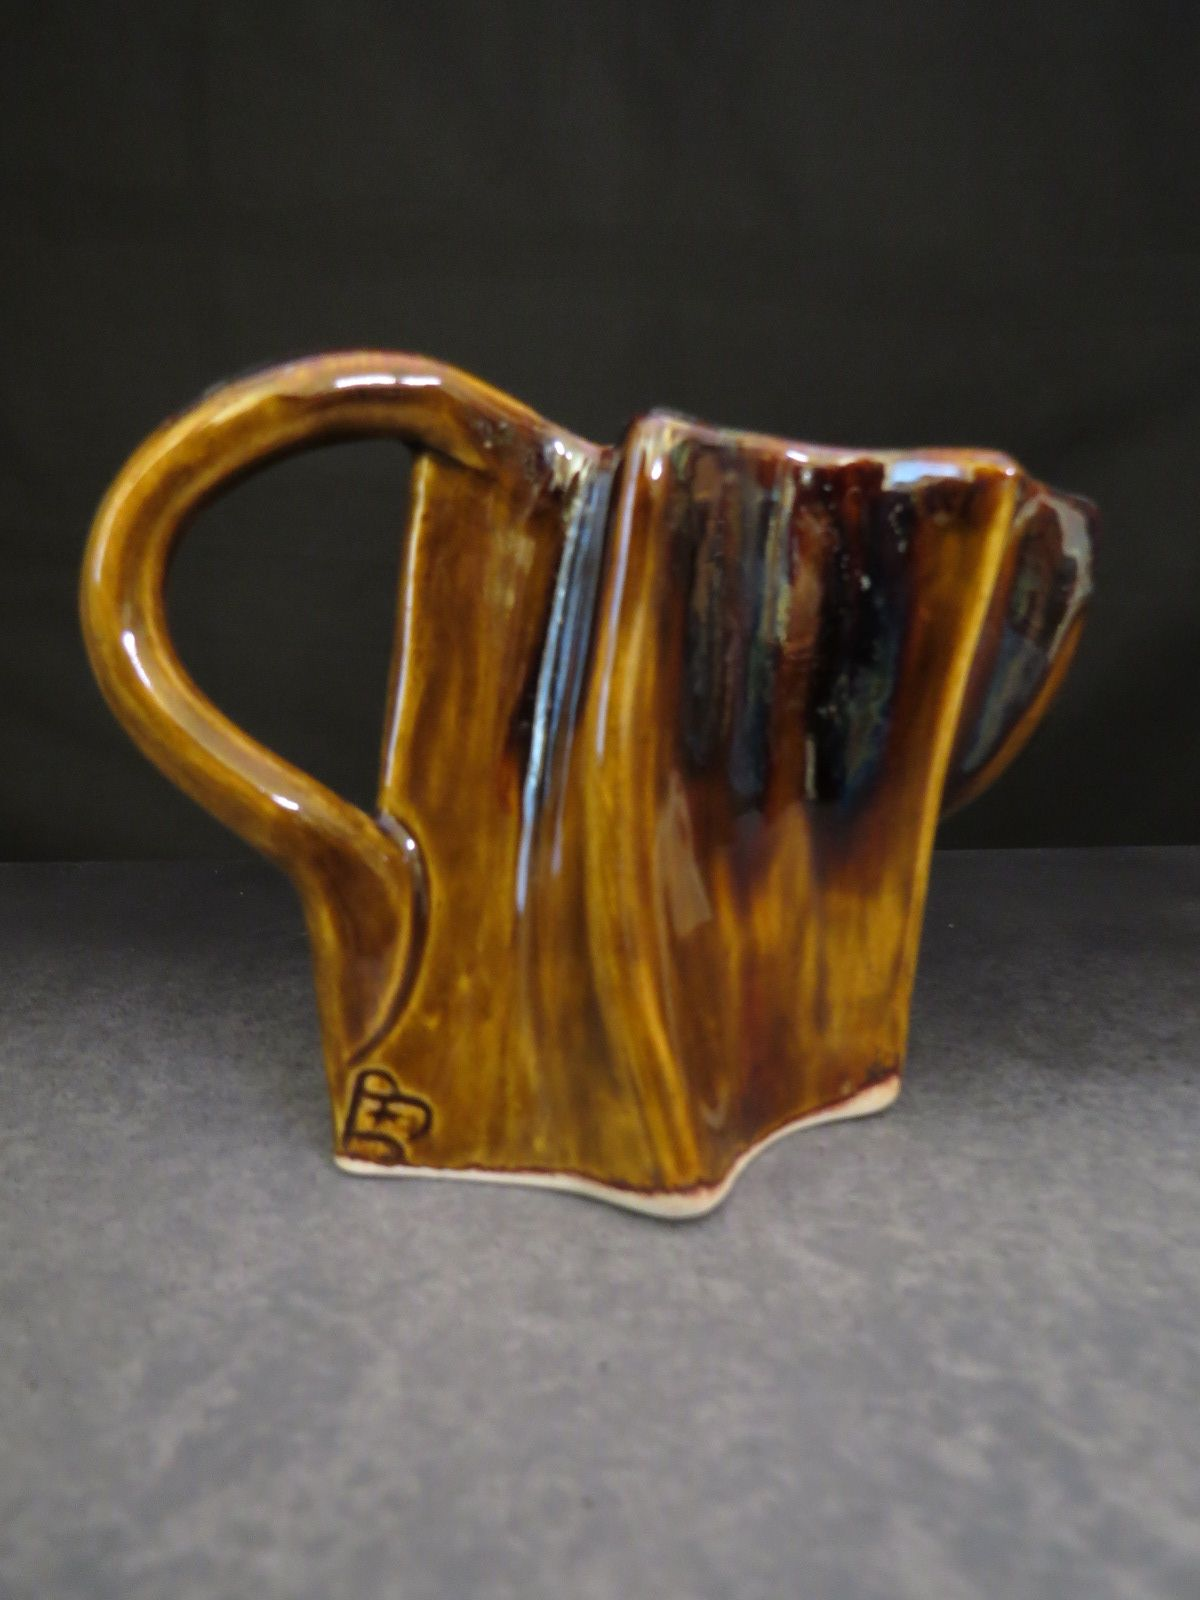 Extruded Ceramic Small coffee cups, Ceramic cups, Coffee